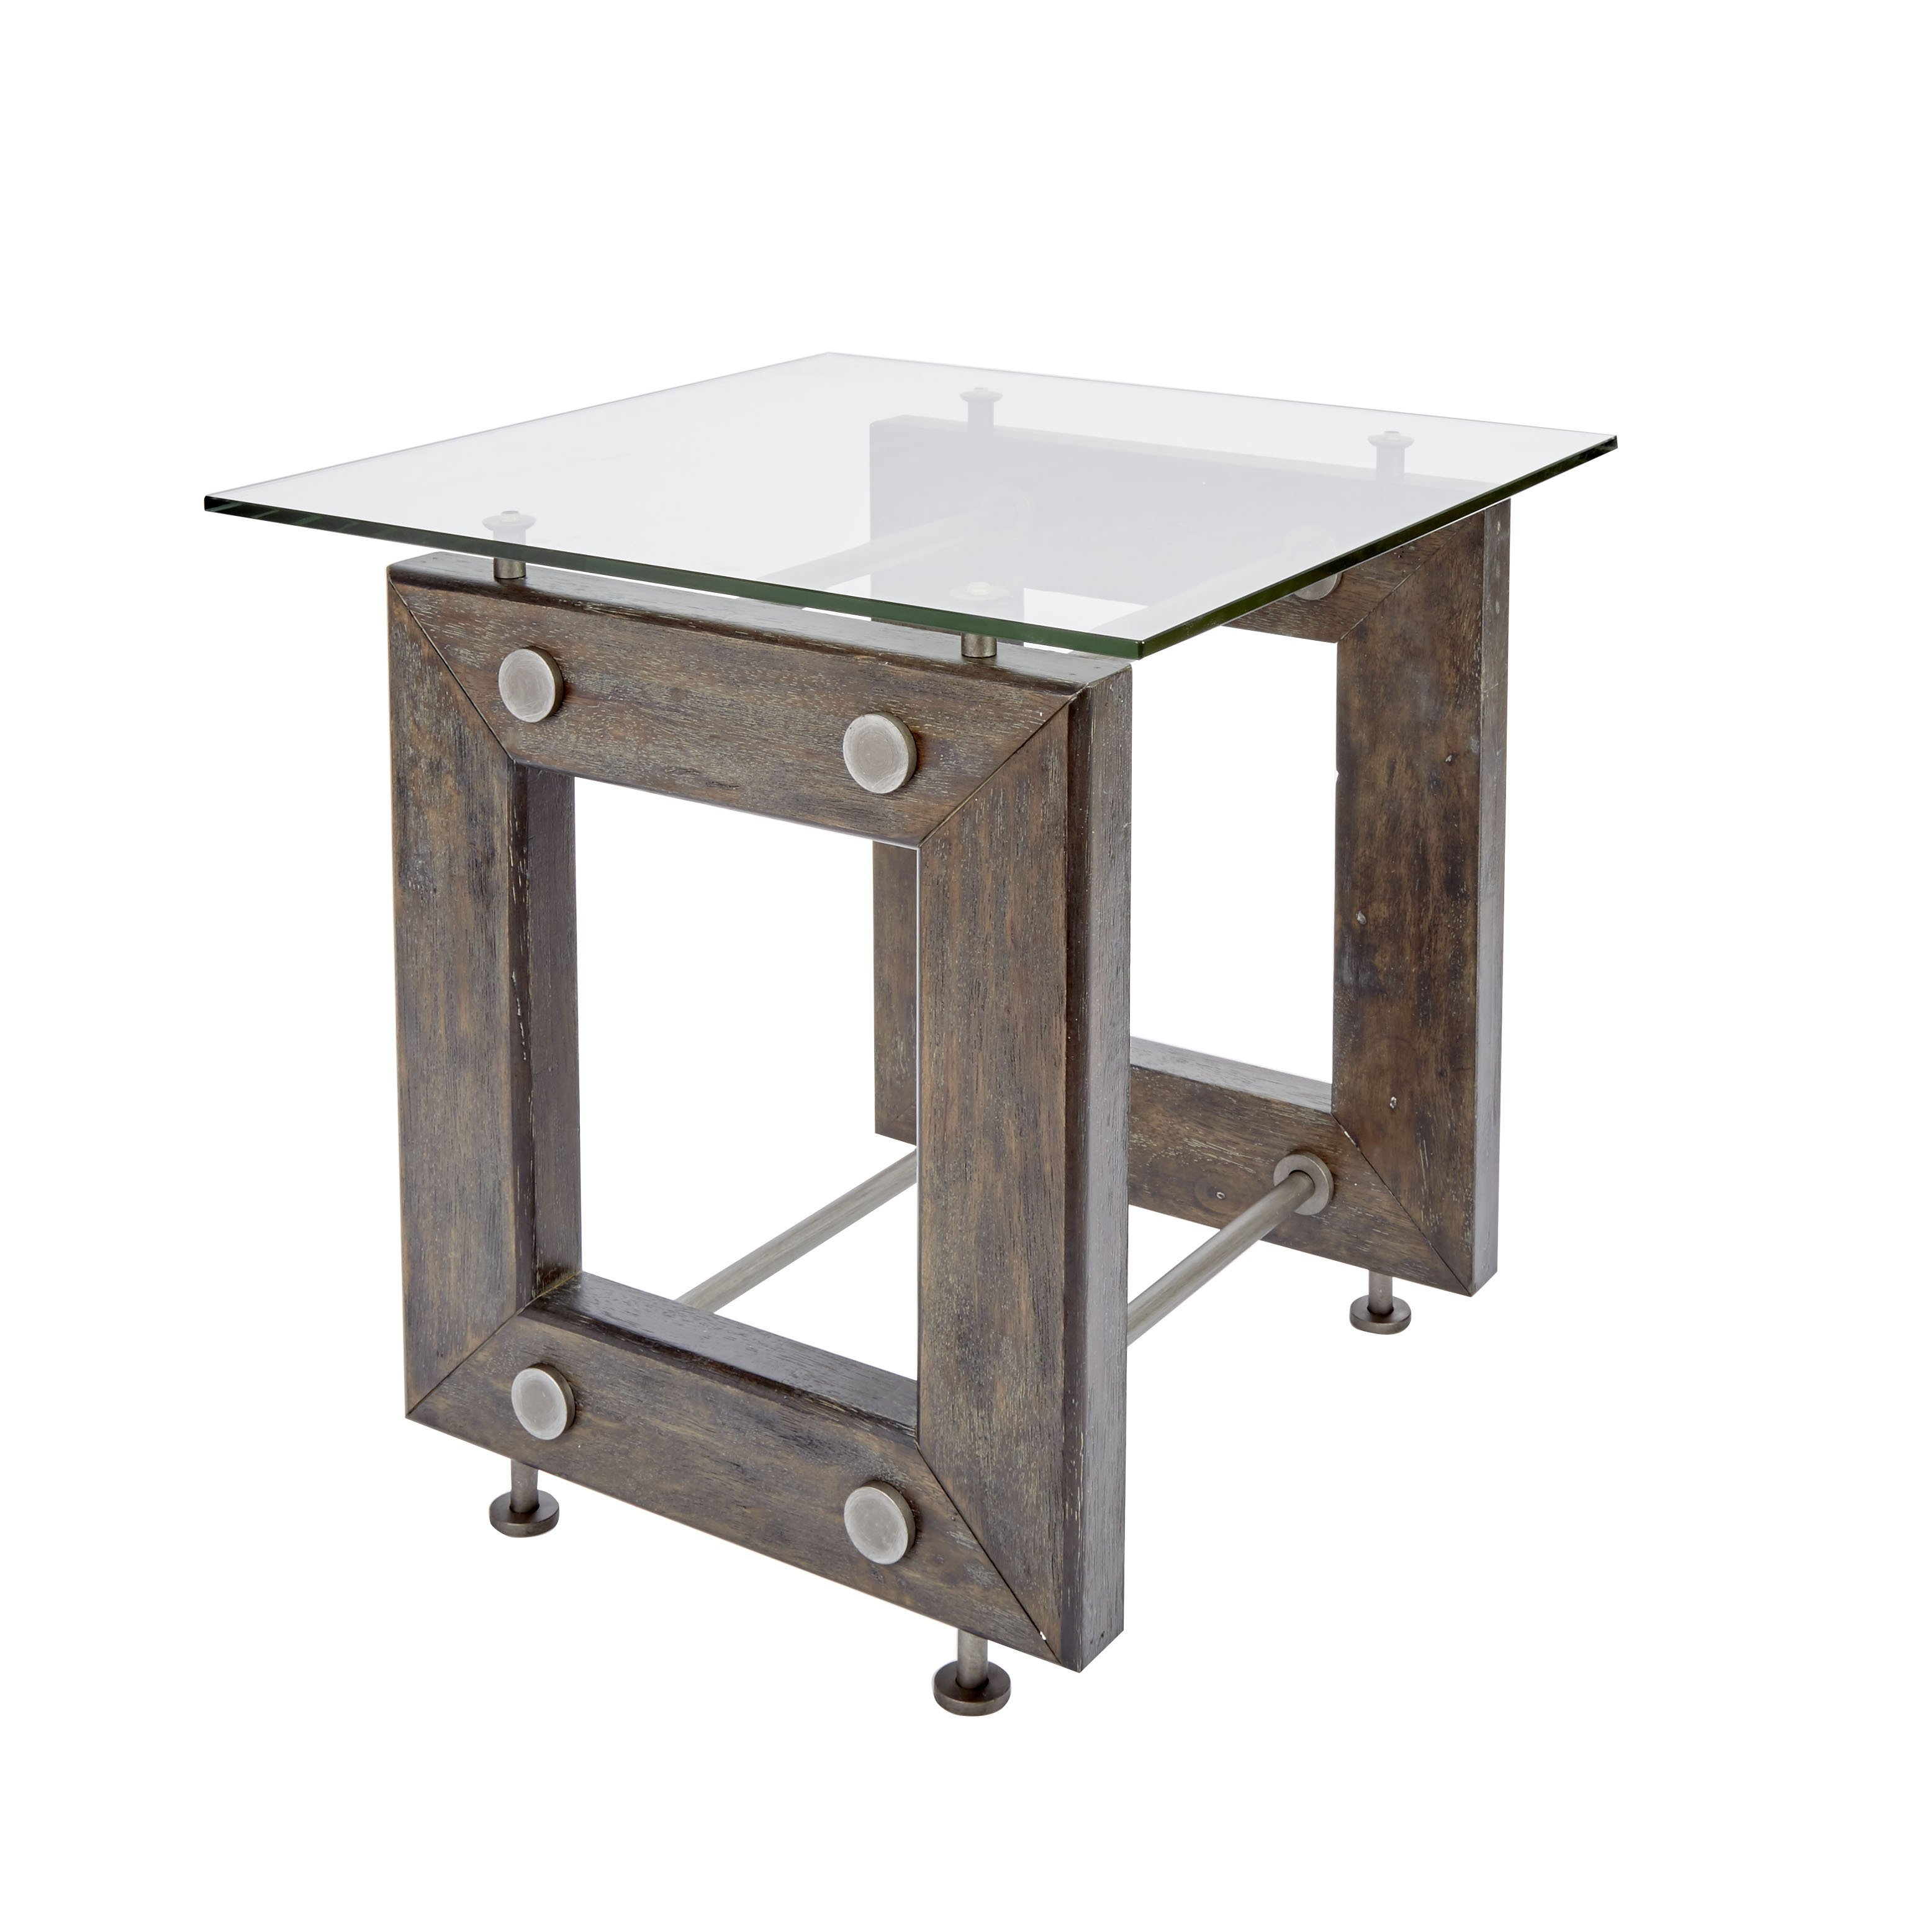 knox industrial collection end table silverwood free accent shipping today swing sets pub with storage fur furniture kmart coffee swivel wood console cabinet slim couch pottery